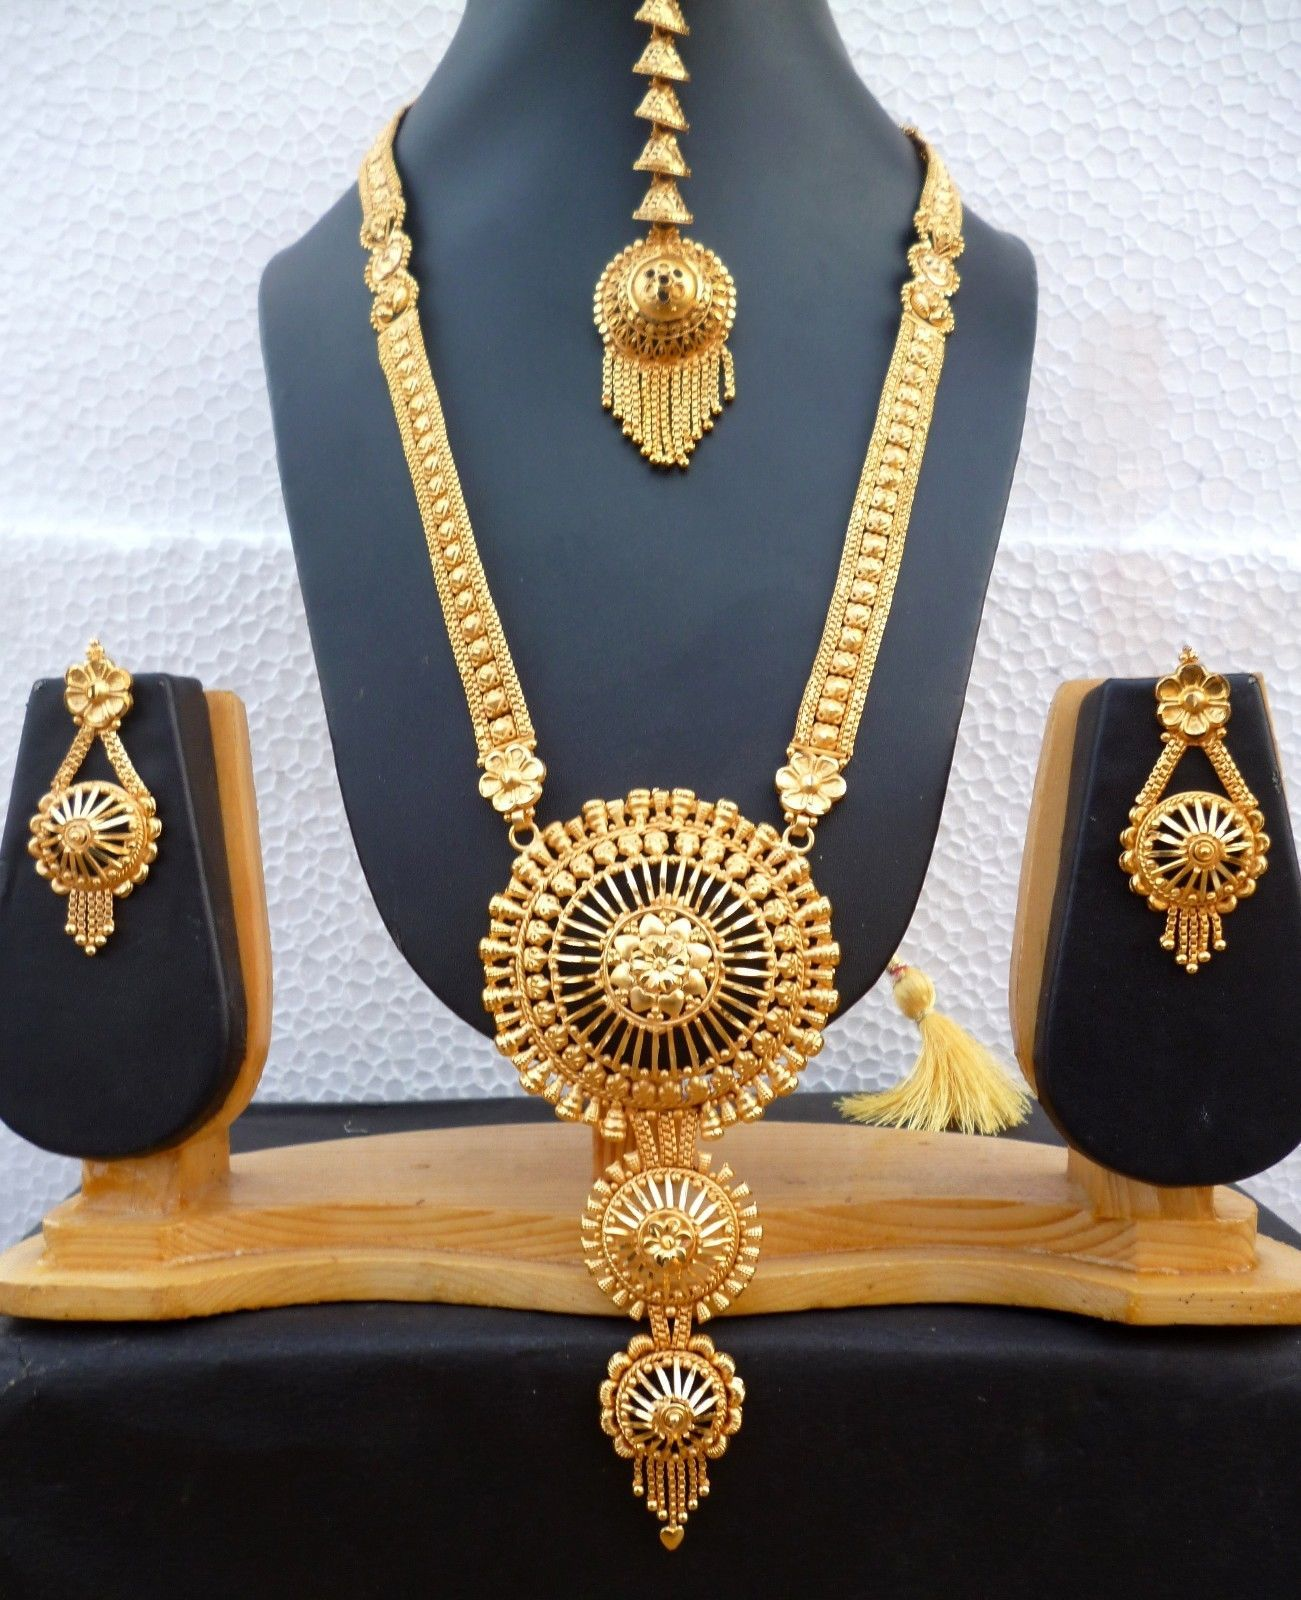 22k Gold Plated Indian Designer Necklace Tikka Earrings Party Wedding Set Fashion Jewelry Jewelry & Watches